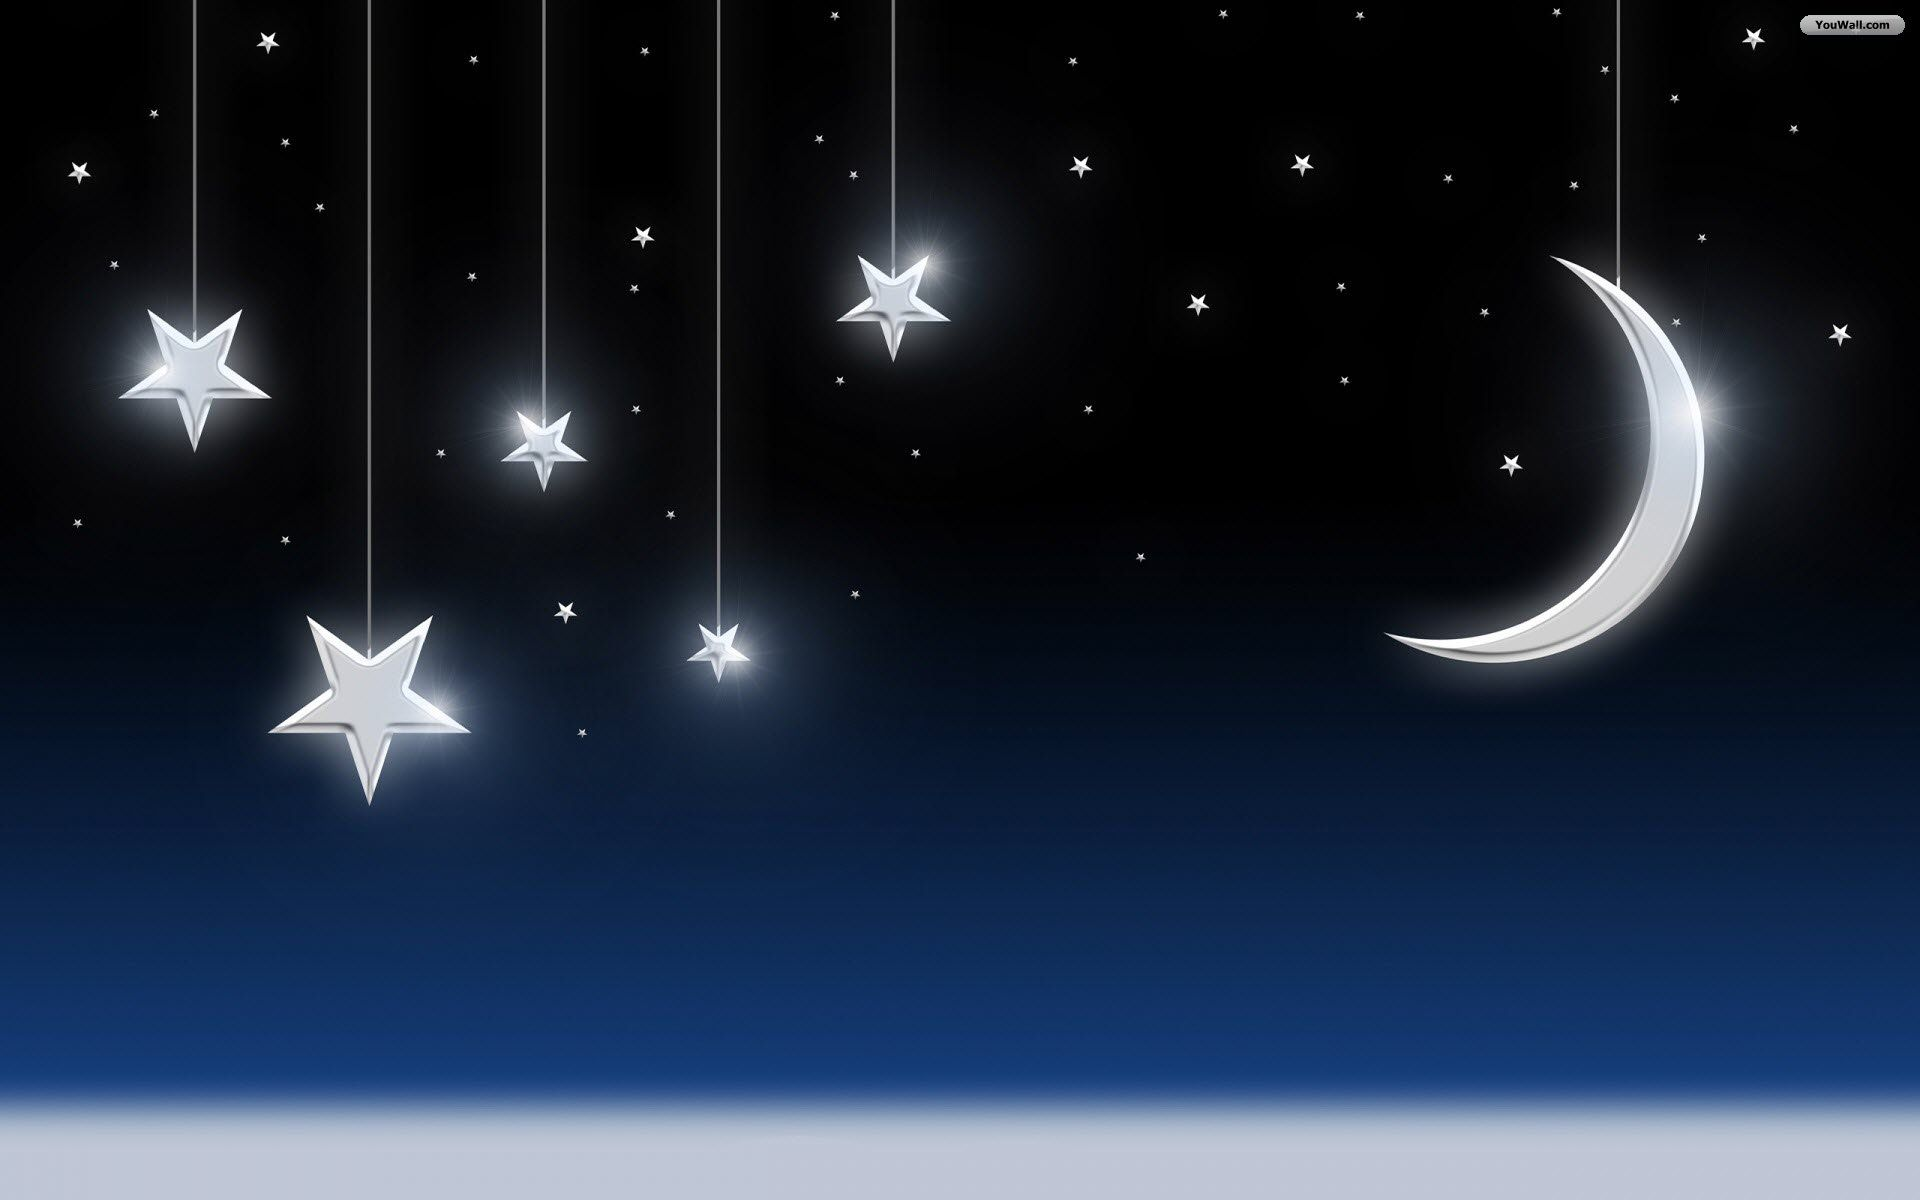 Moon And Stars Desktop Wallpaper Wallpapersafari Moon And Stars Wallpaper Good Night Wallpaper Facebook Cover